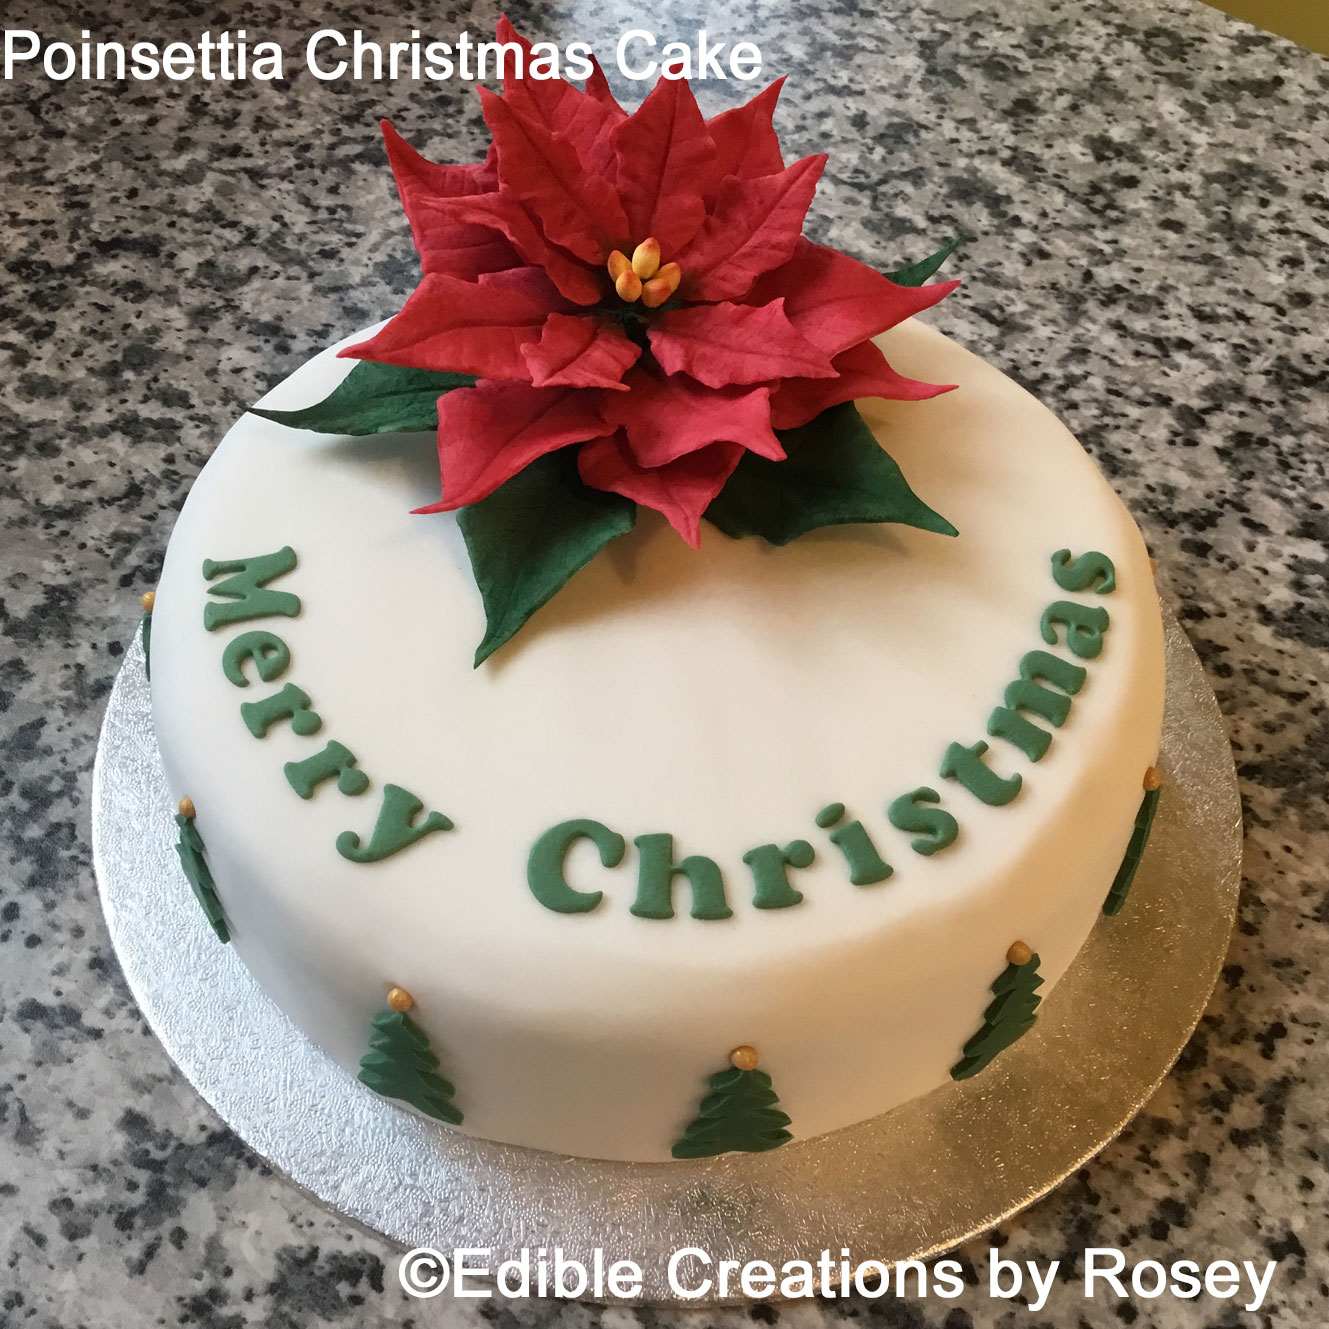 Poinsettia & Trees Christmas Cake